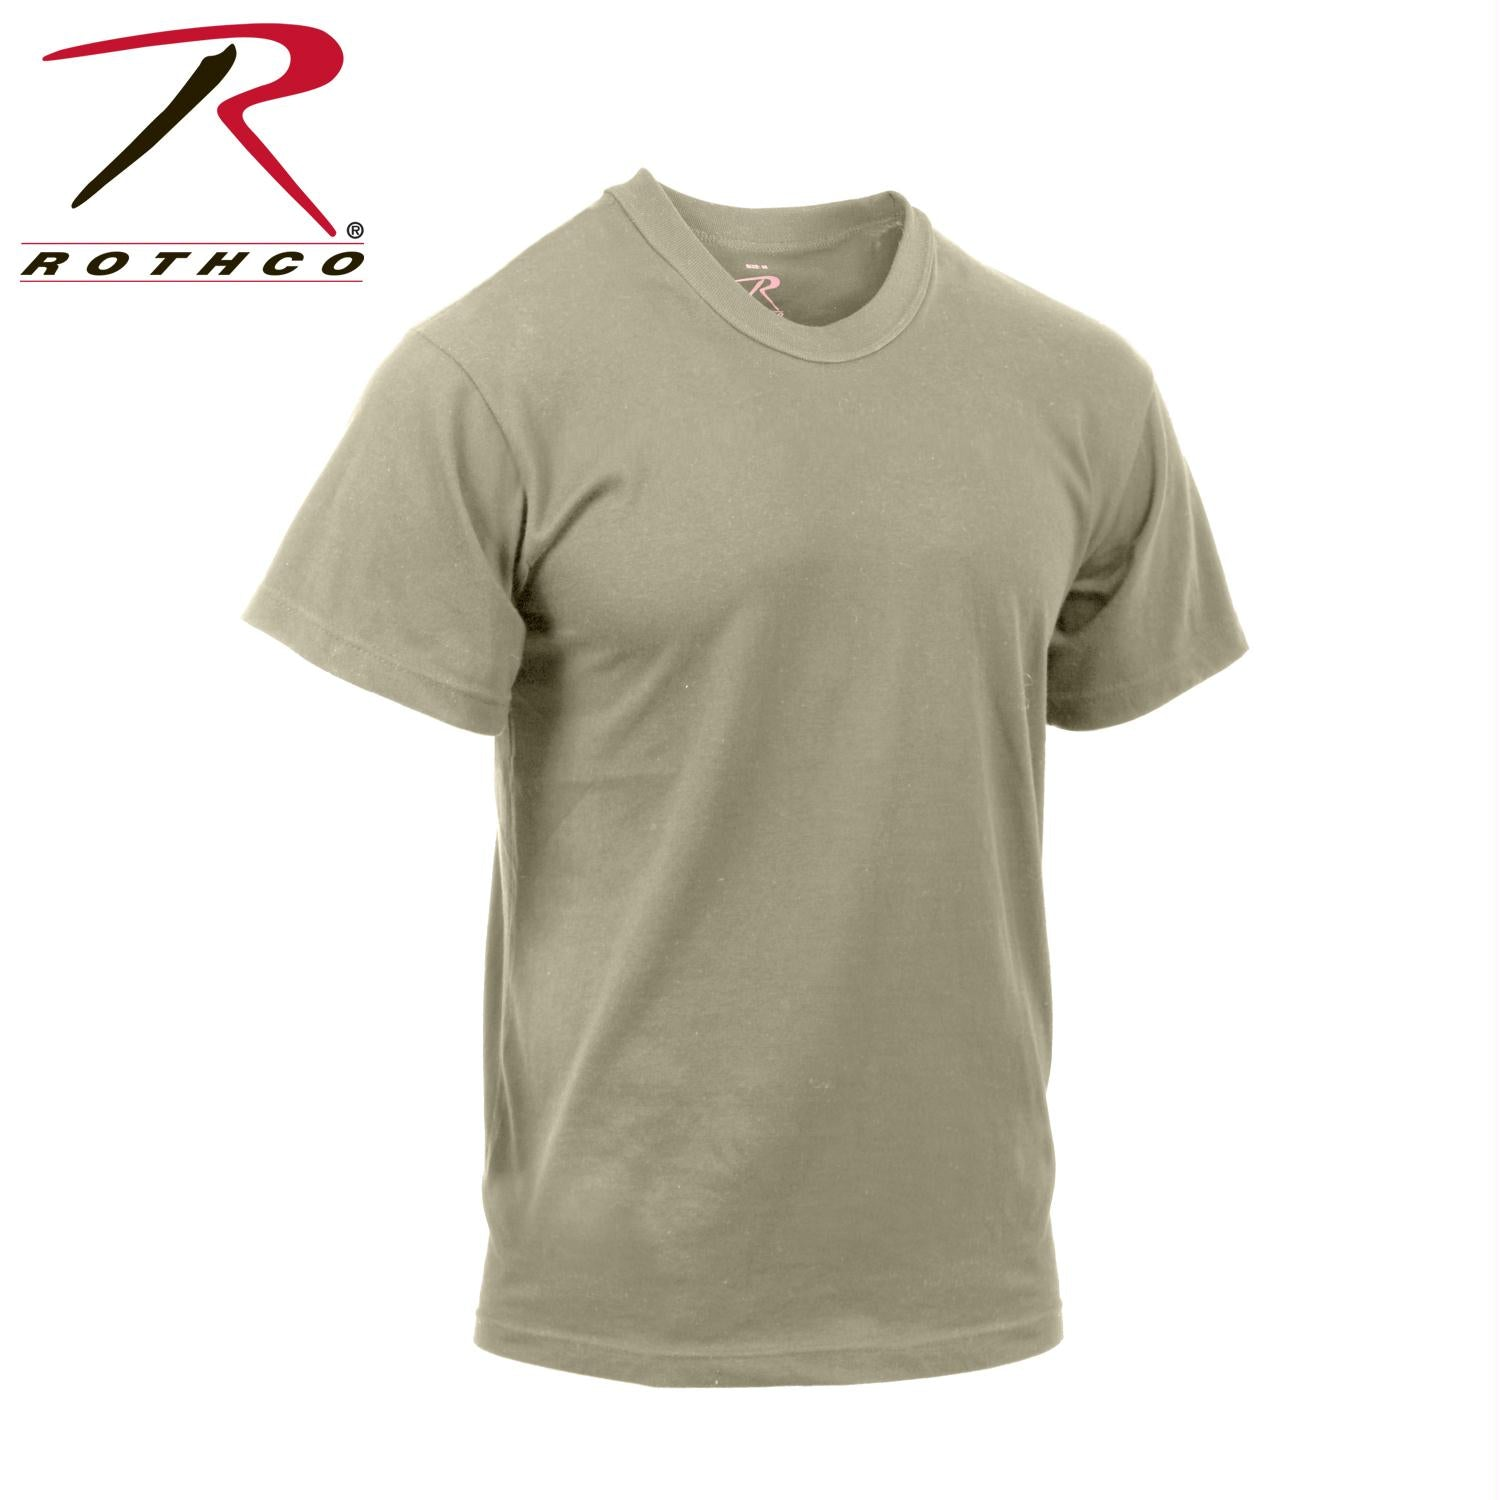 Rothco Moisture Wicking T-Shirts - Desert Sand / XL